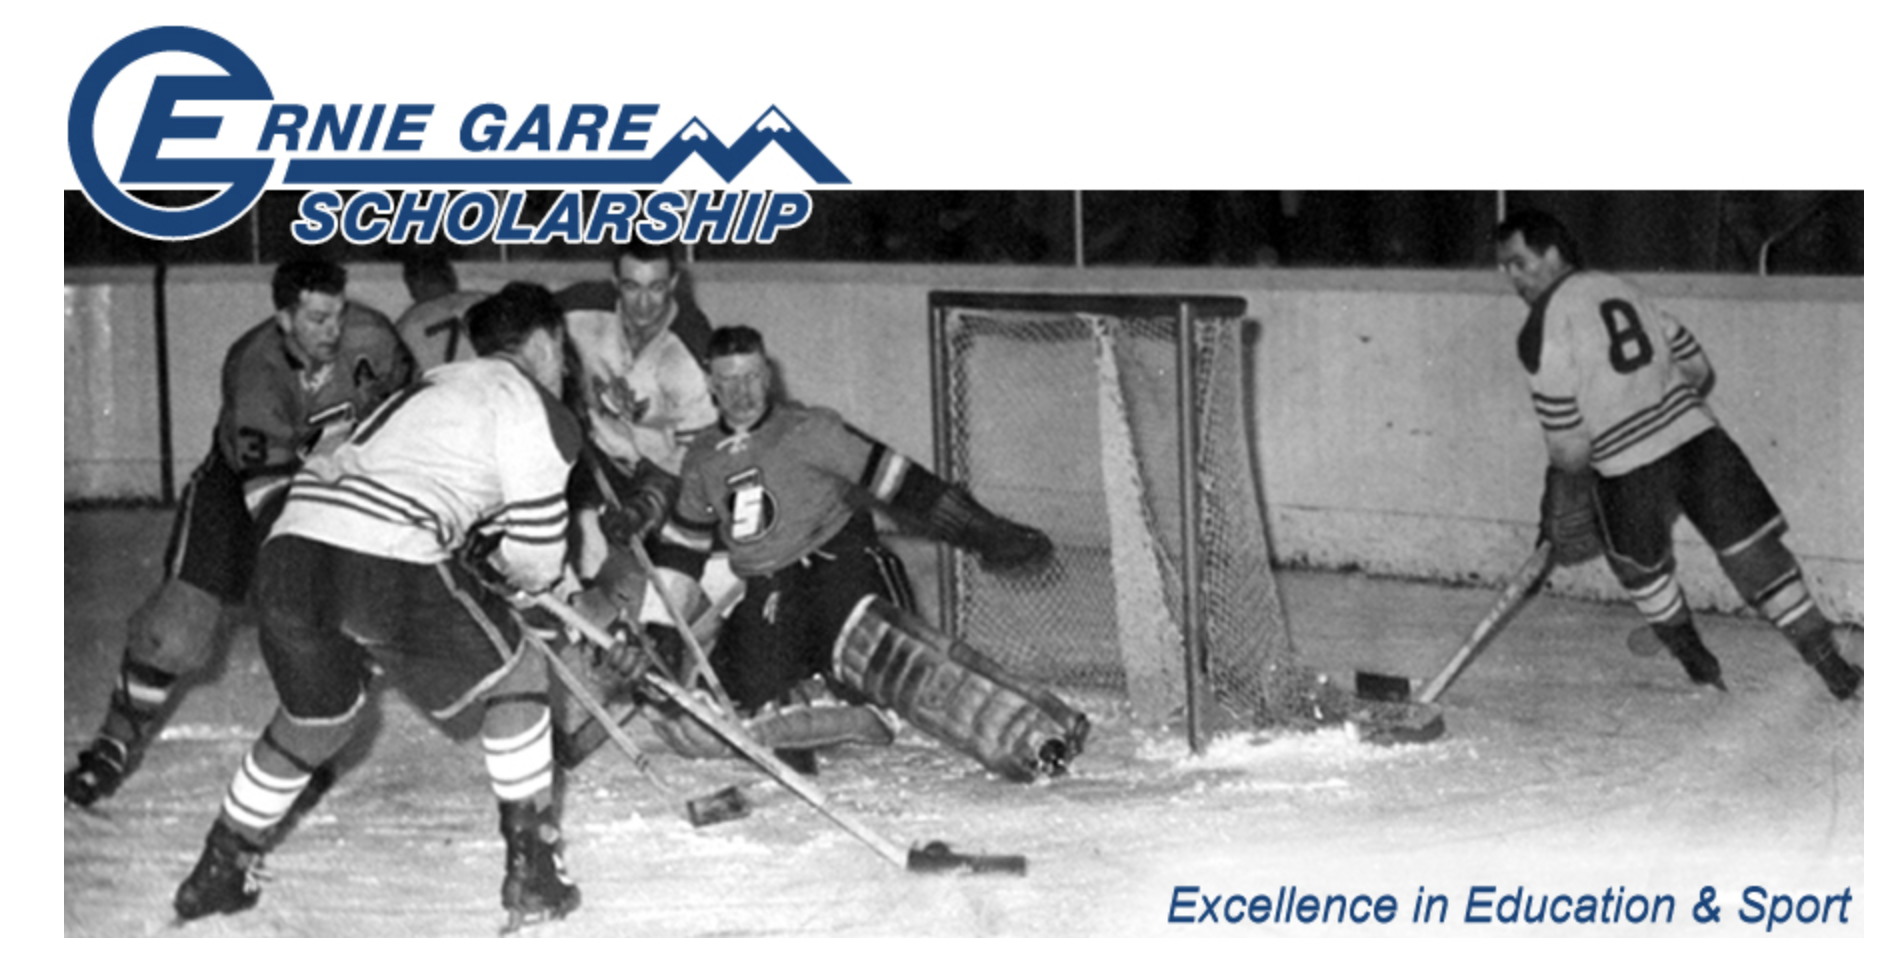 Ernie Gare Athletic Scholarship Foundation